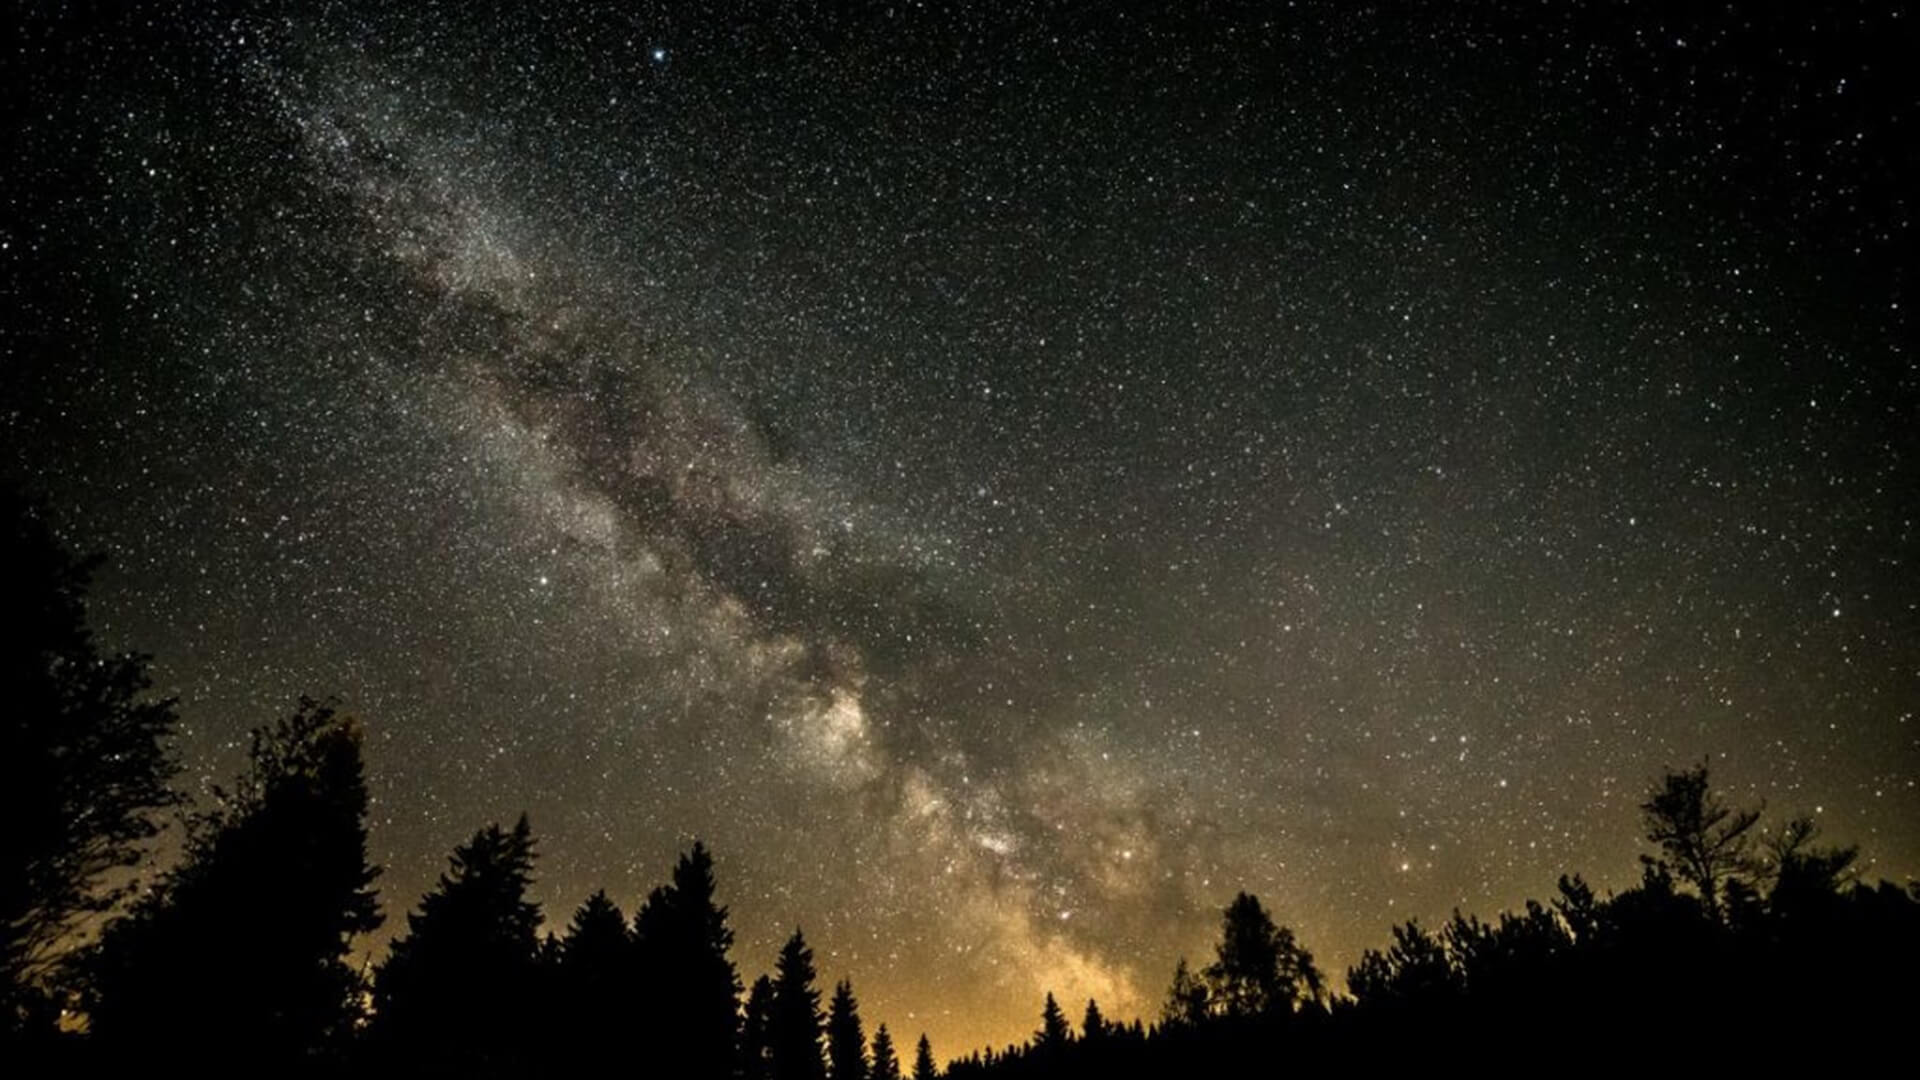 Braunlage: Starry sky with the Milky Way over the Sankt Andreasberg observatory